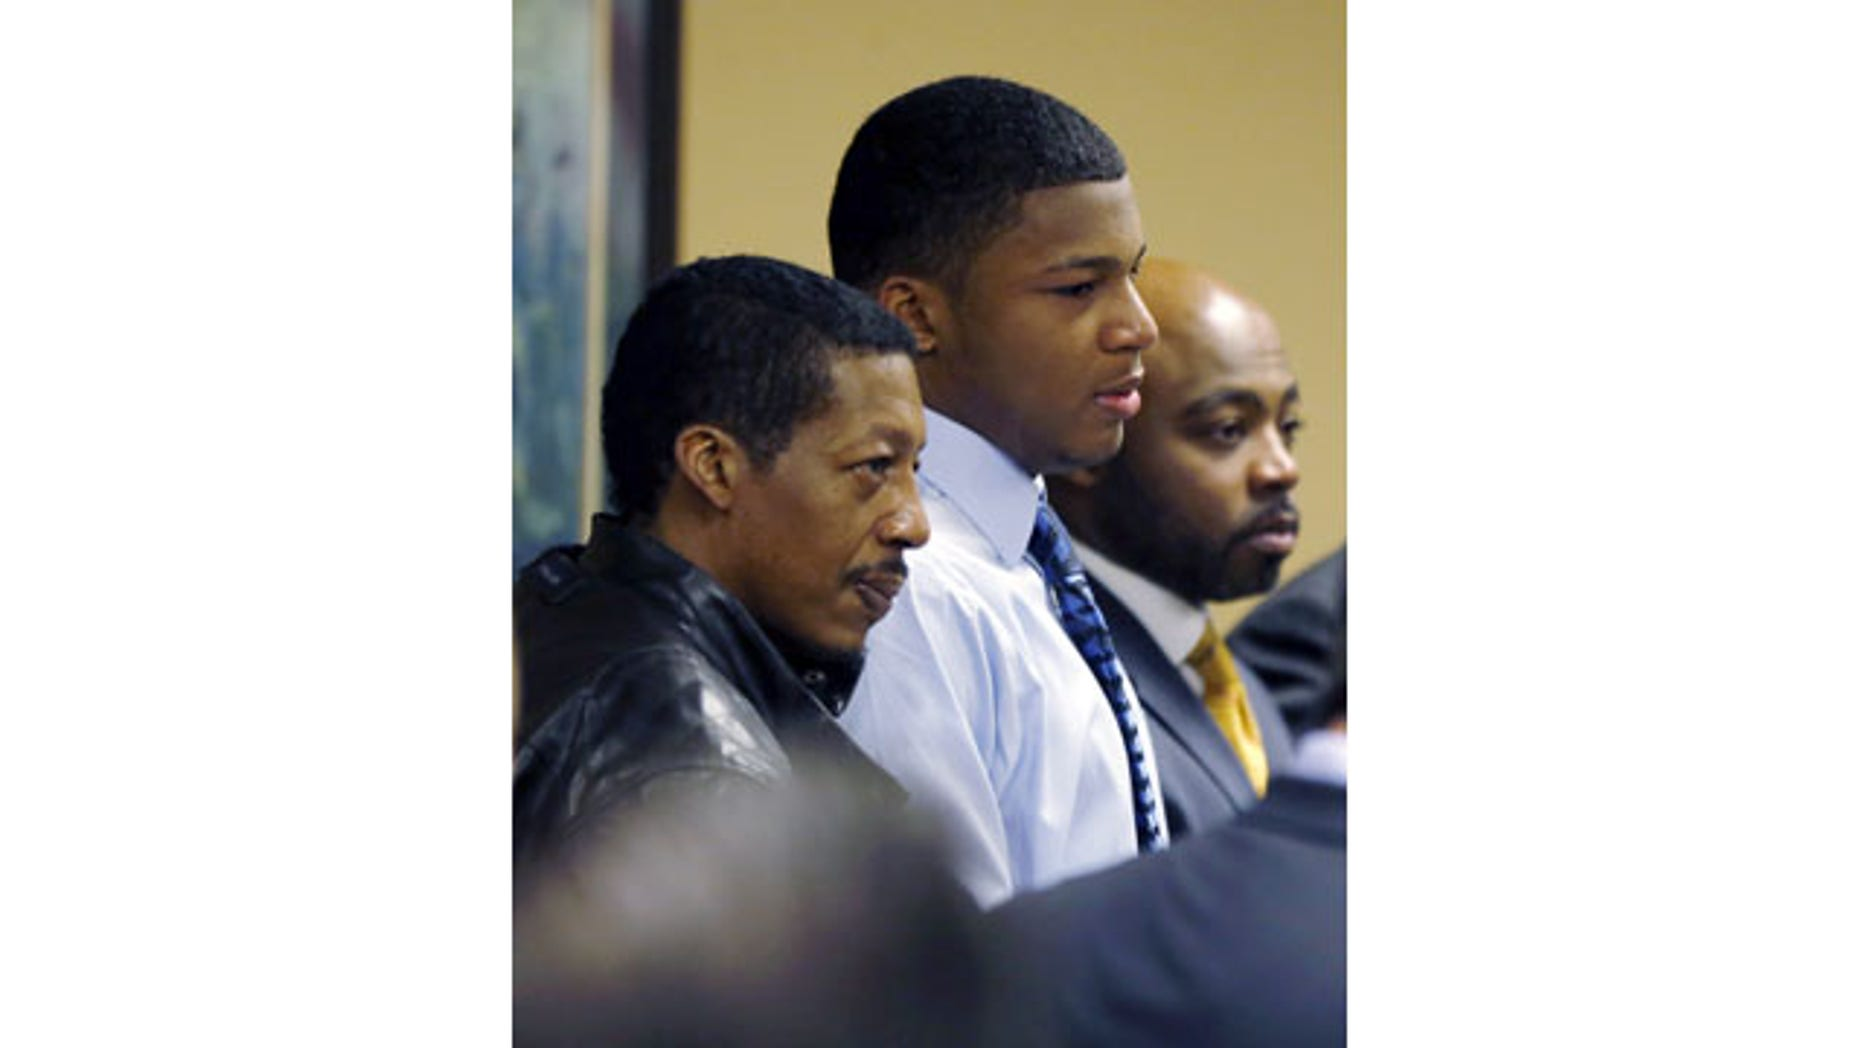 March 17, 2013: Ma'lik Richmond, center, stands with his father, Nathaniel Richmond, left, and attorney Walter Madison after he and co-defendant Trent Mays, 17, were found delinquent on rape and other charges in juvenile court in Steubenville, Ohio. (AP/File)